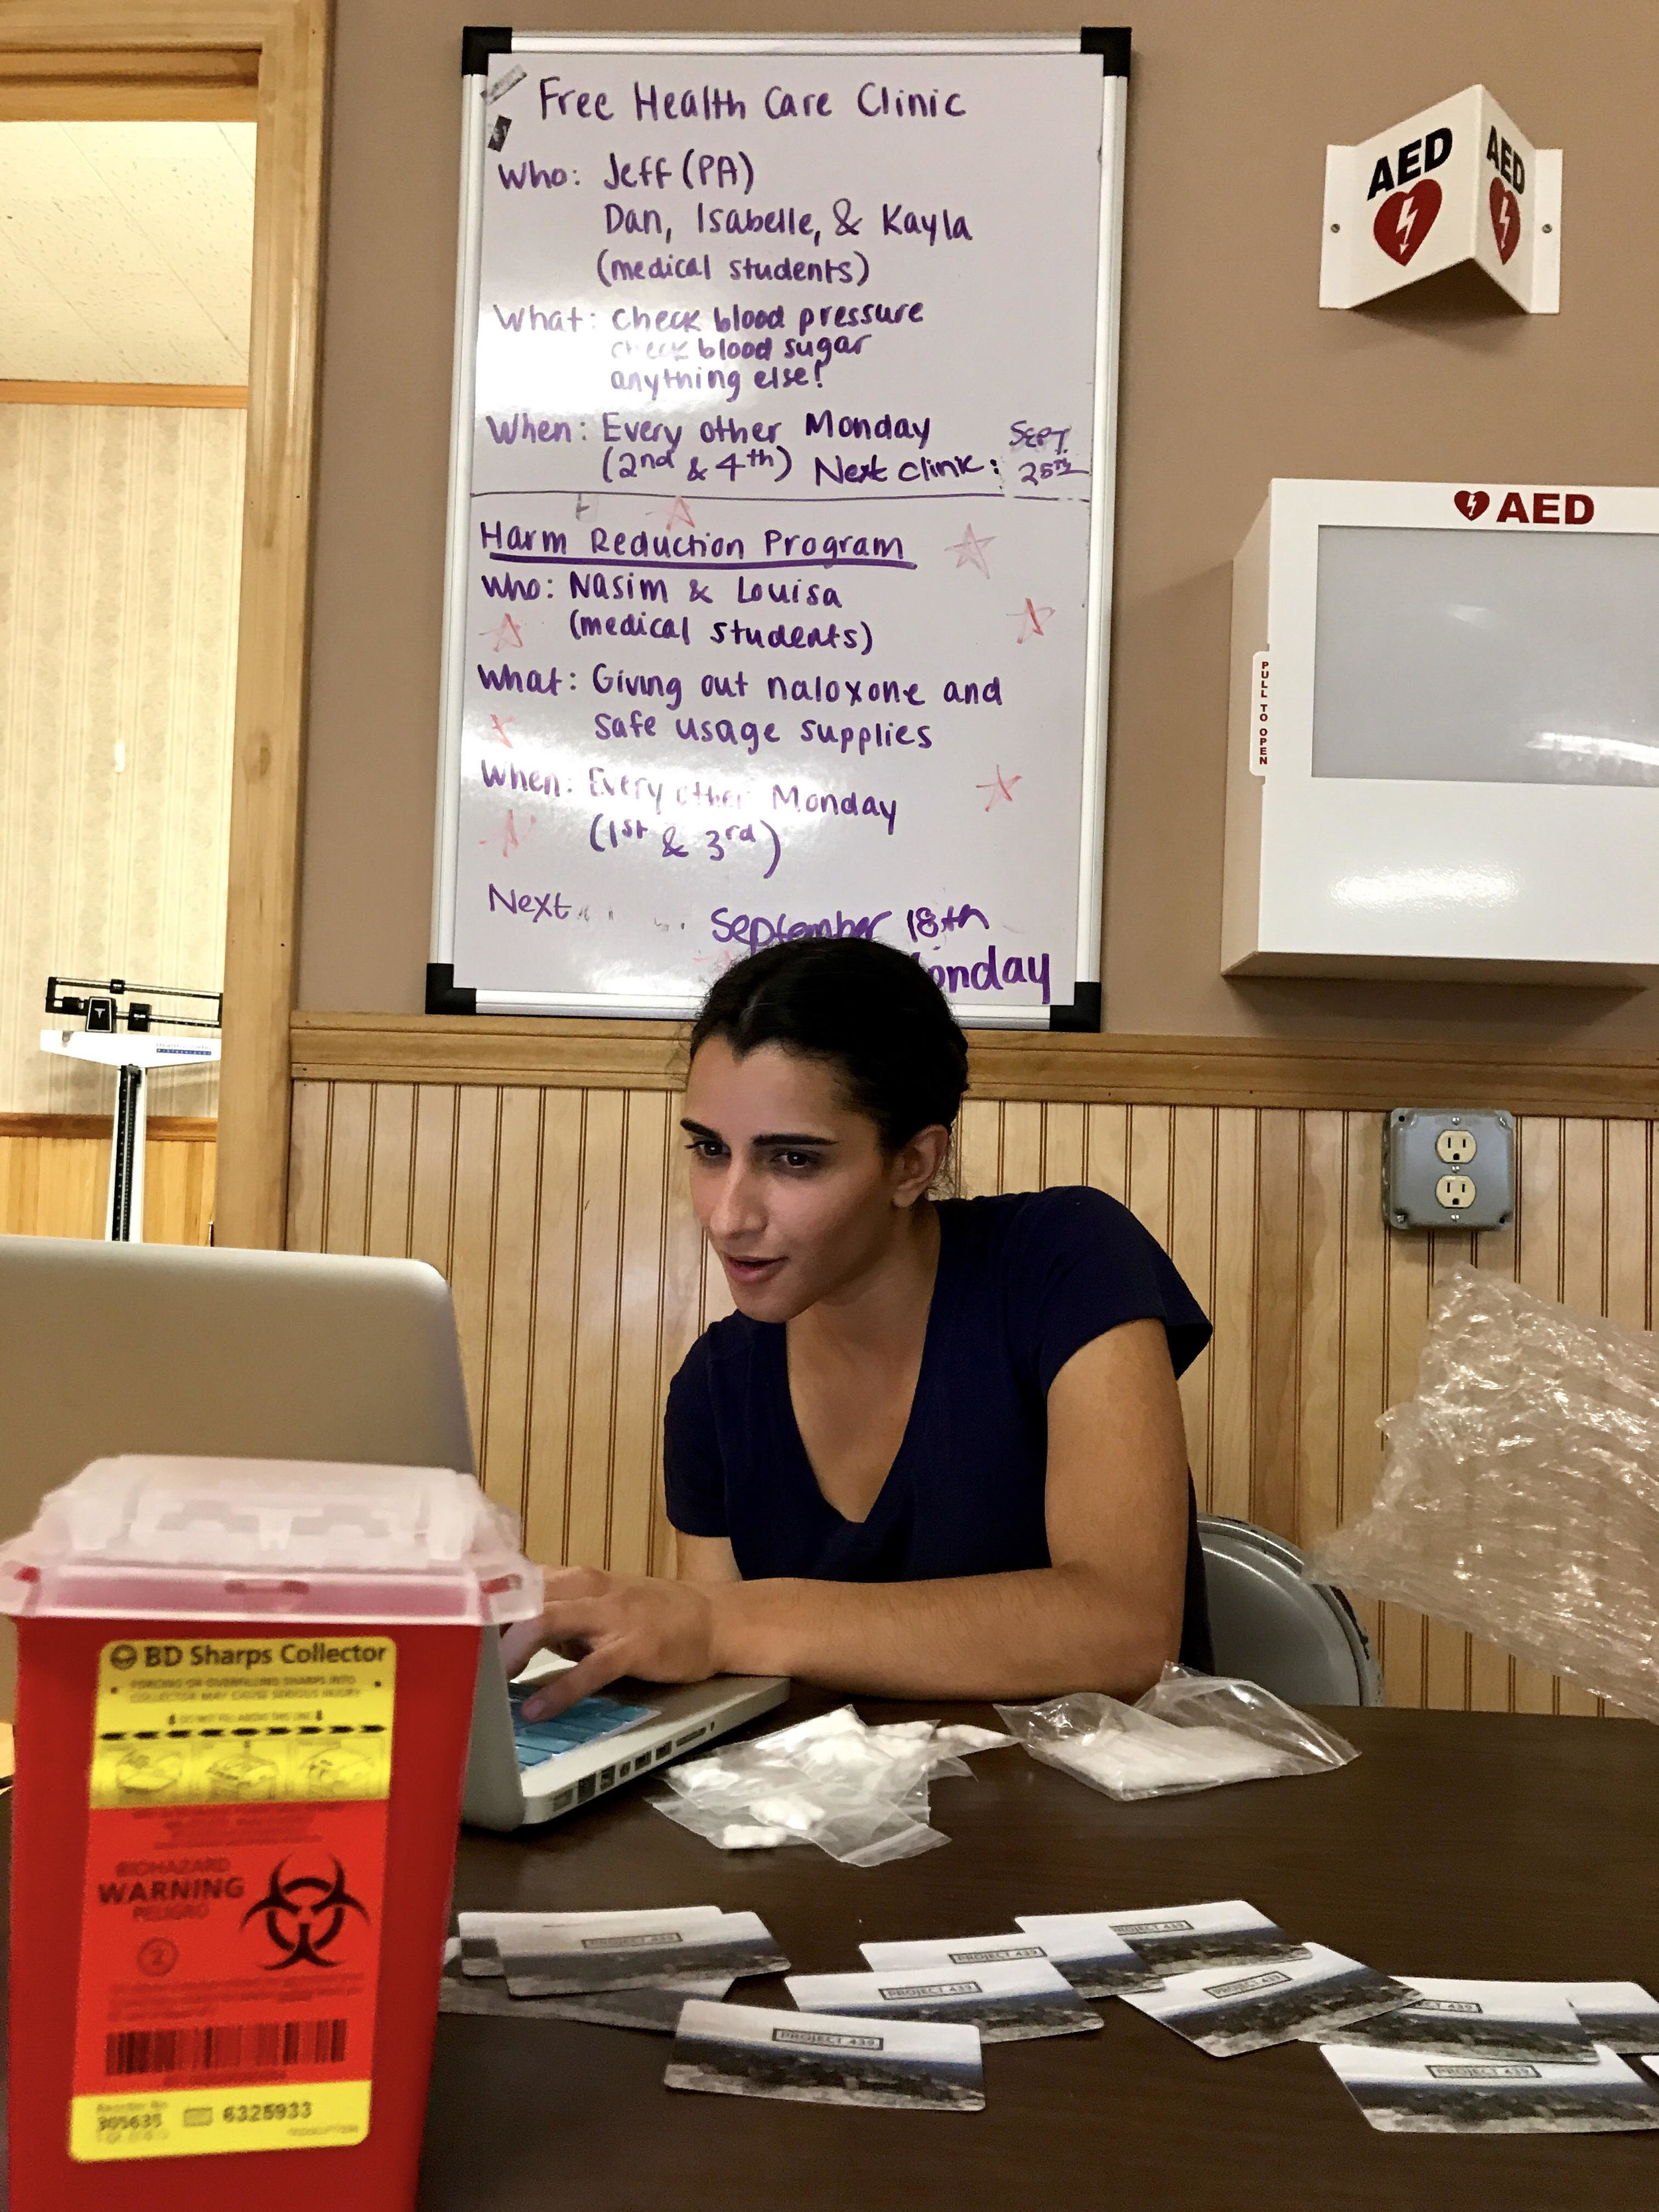 Nasim Azizgolshani, 25, tracks the supplies given out Monday during the syringe exchange hours. That day 14 people showed up.  CREDIT COURTESY OF LOUISA CHEN